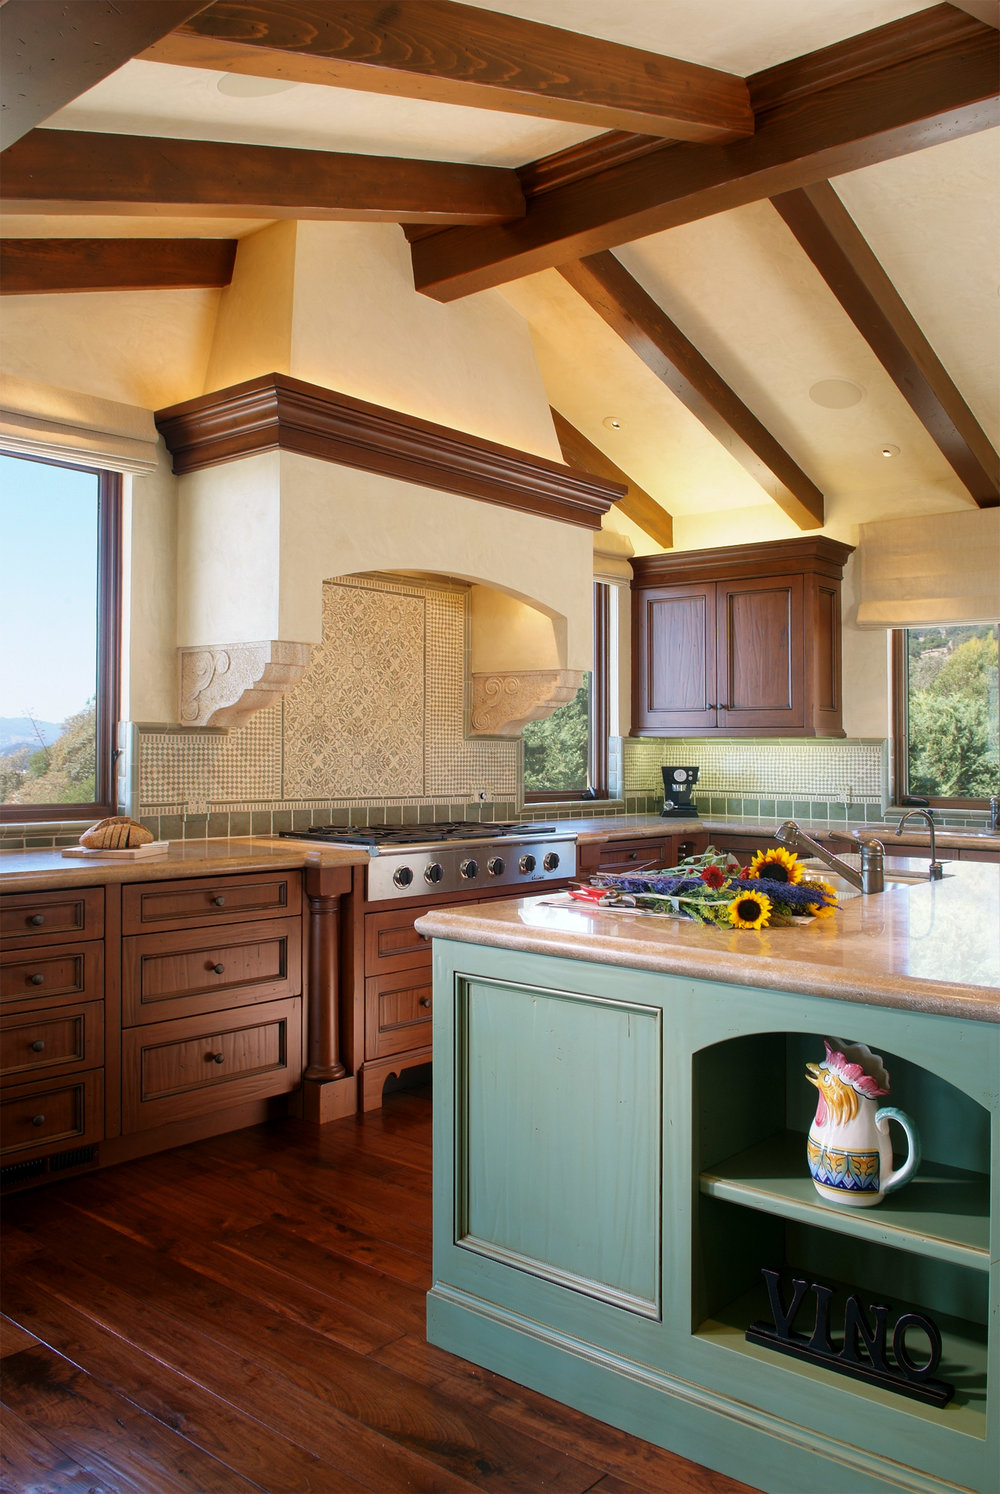 Napa_Valley_Italian_Villa_kitchen_01.jpg